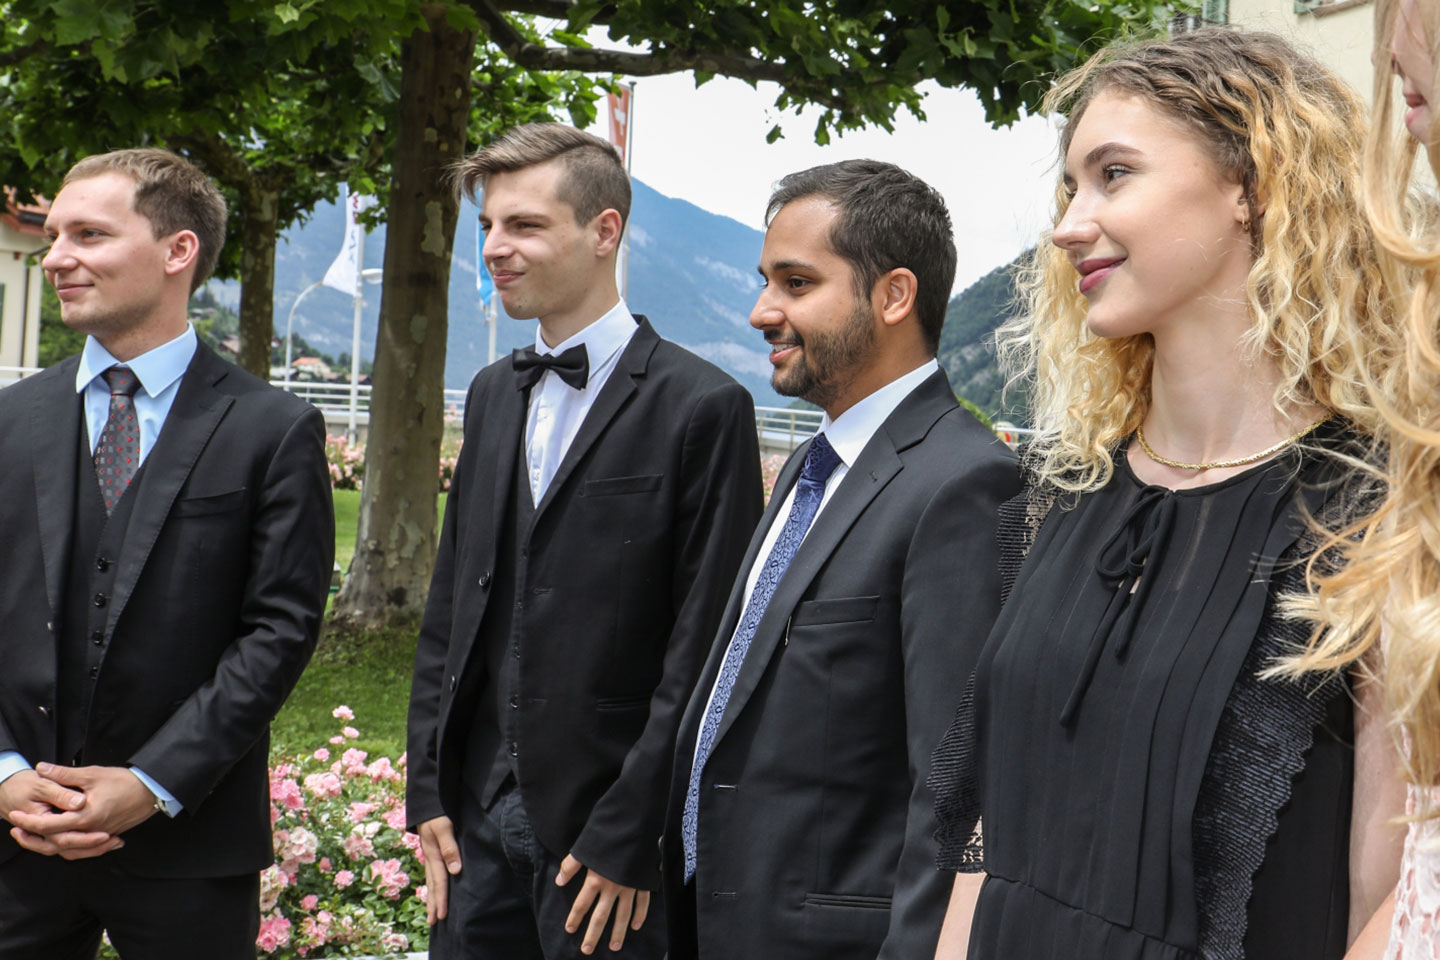 EHL: Swiss School of Tourism and Hospitality